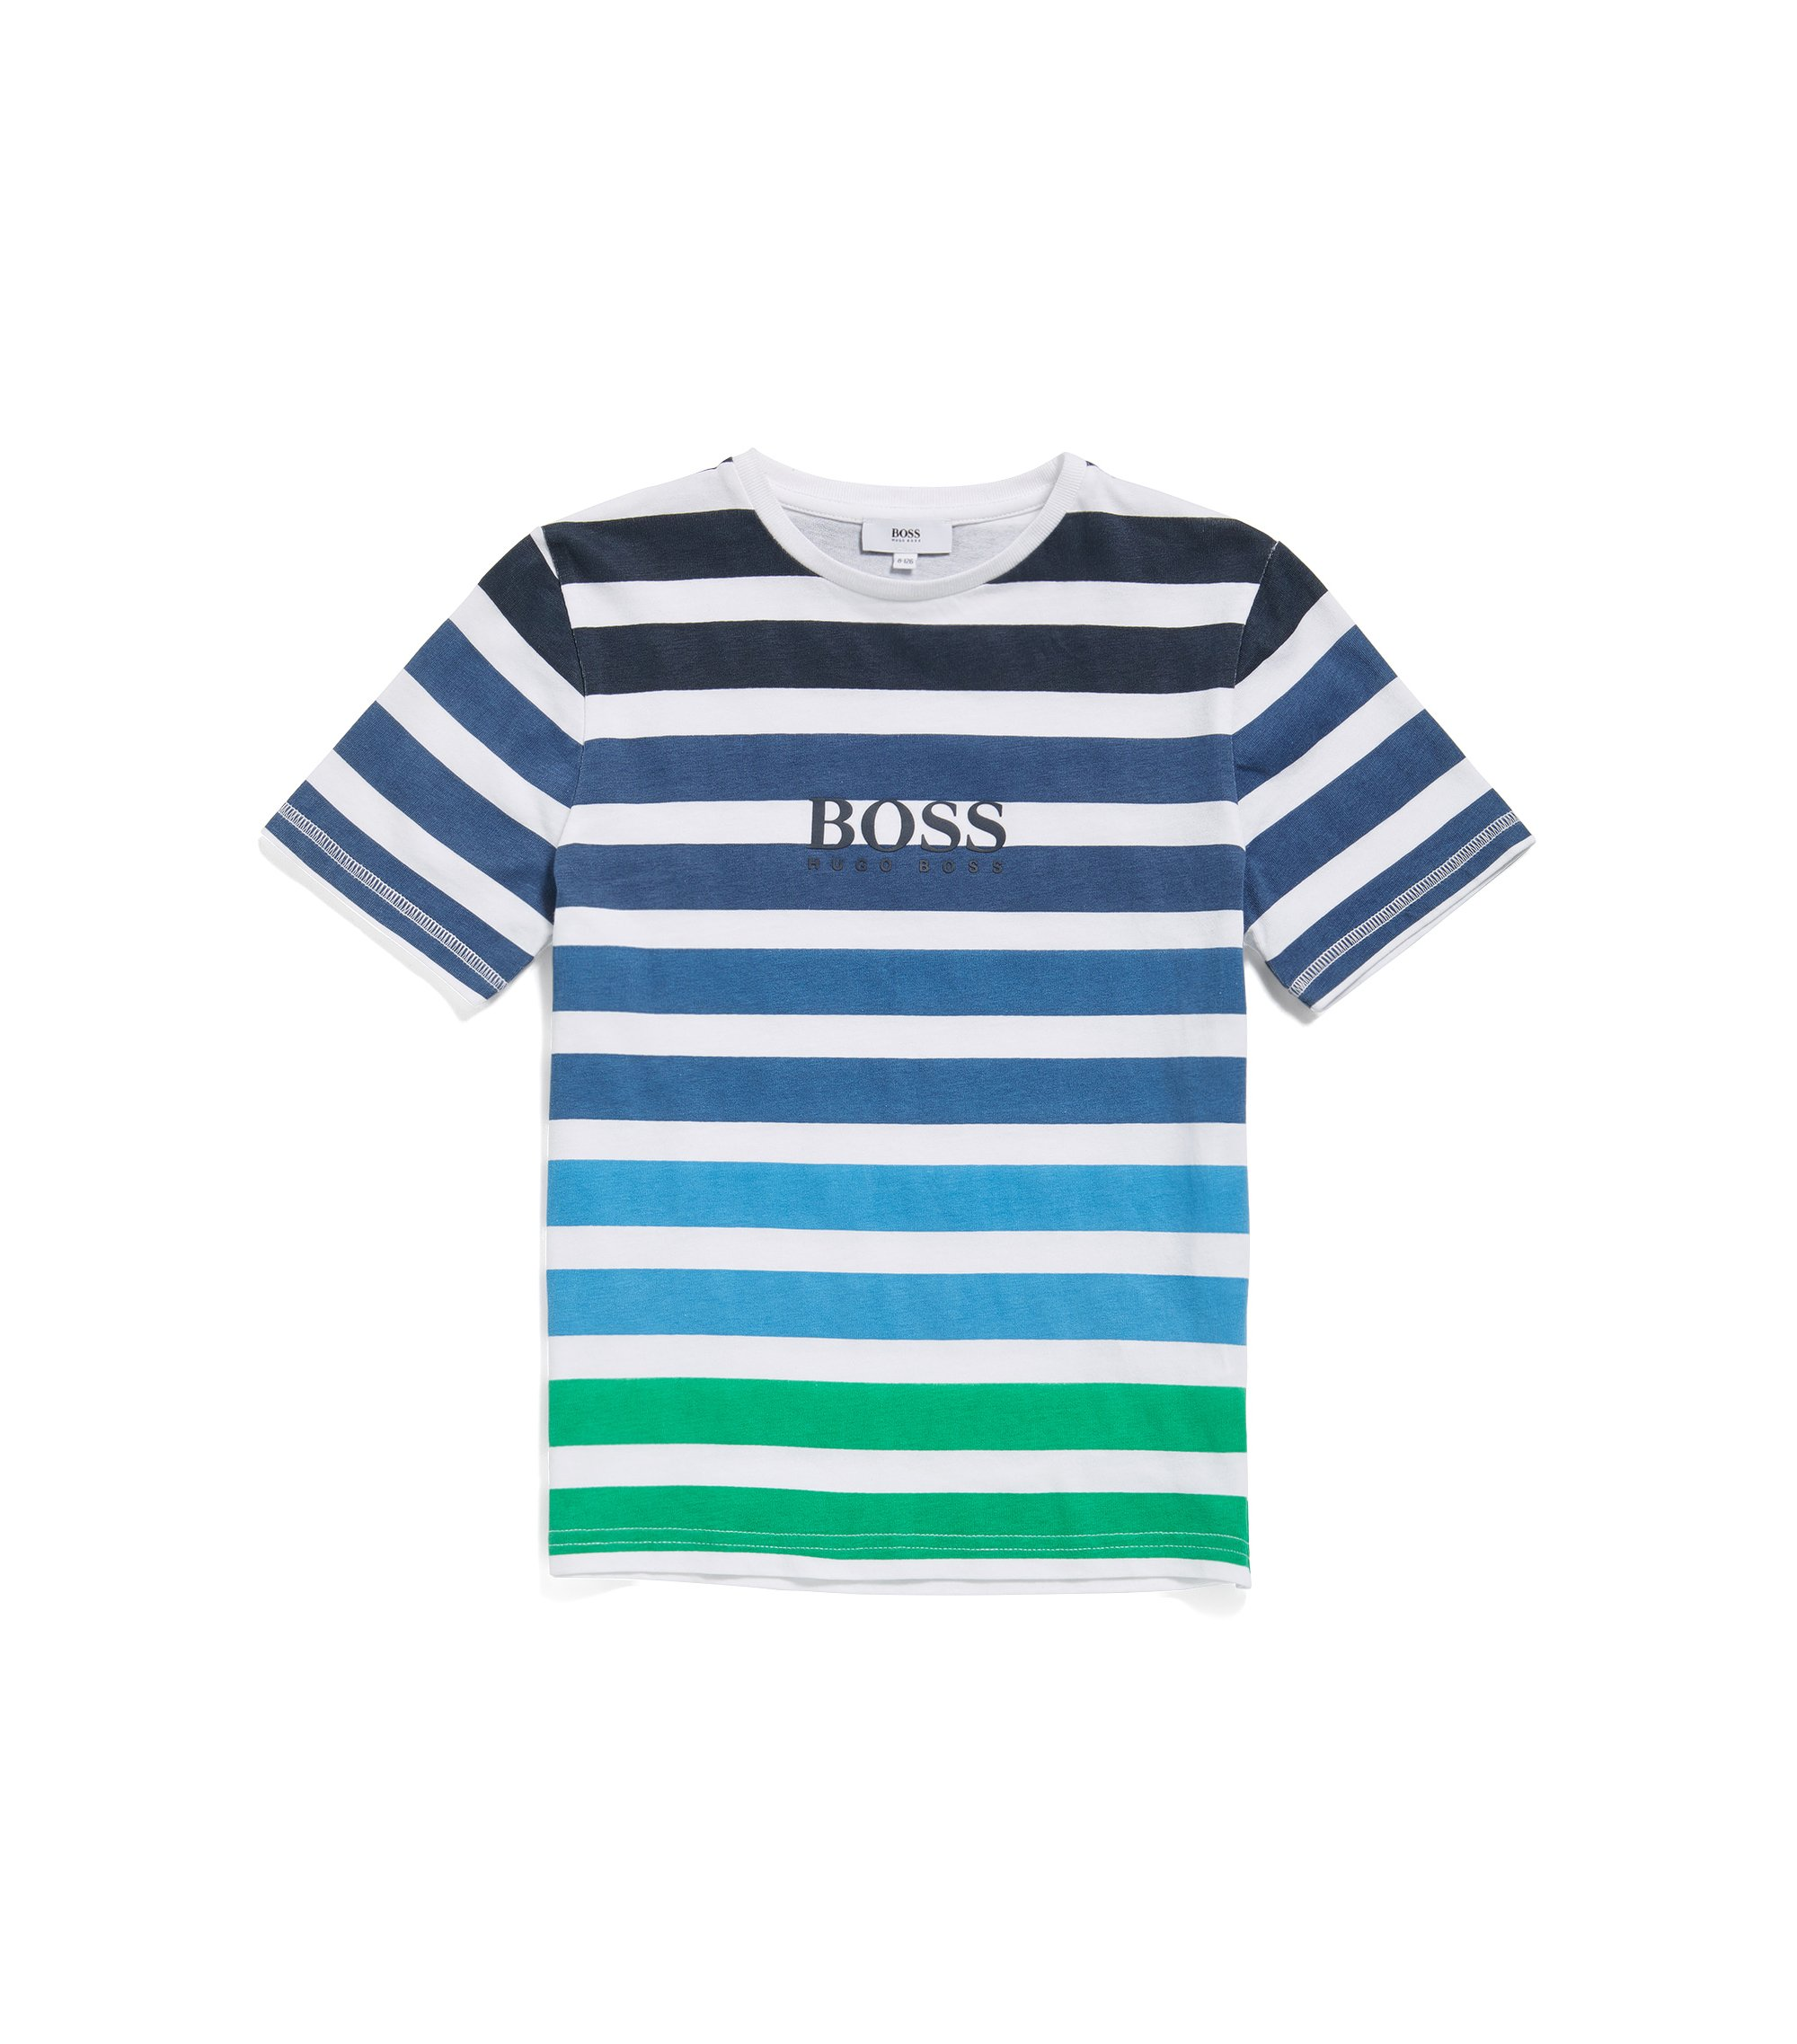 T-shirt Regular Fit pour enfant en jersey simple, Fantaisie